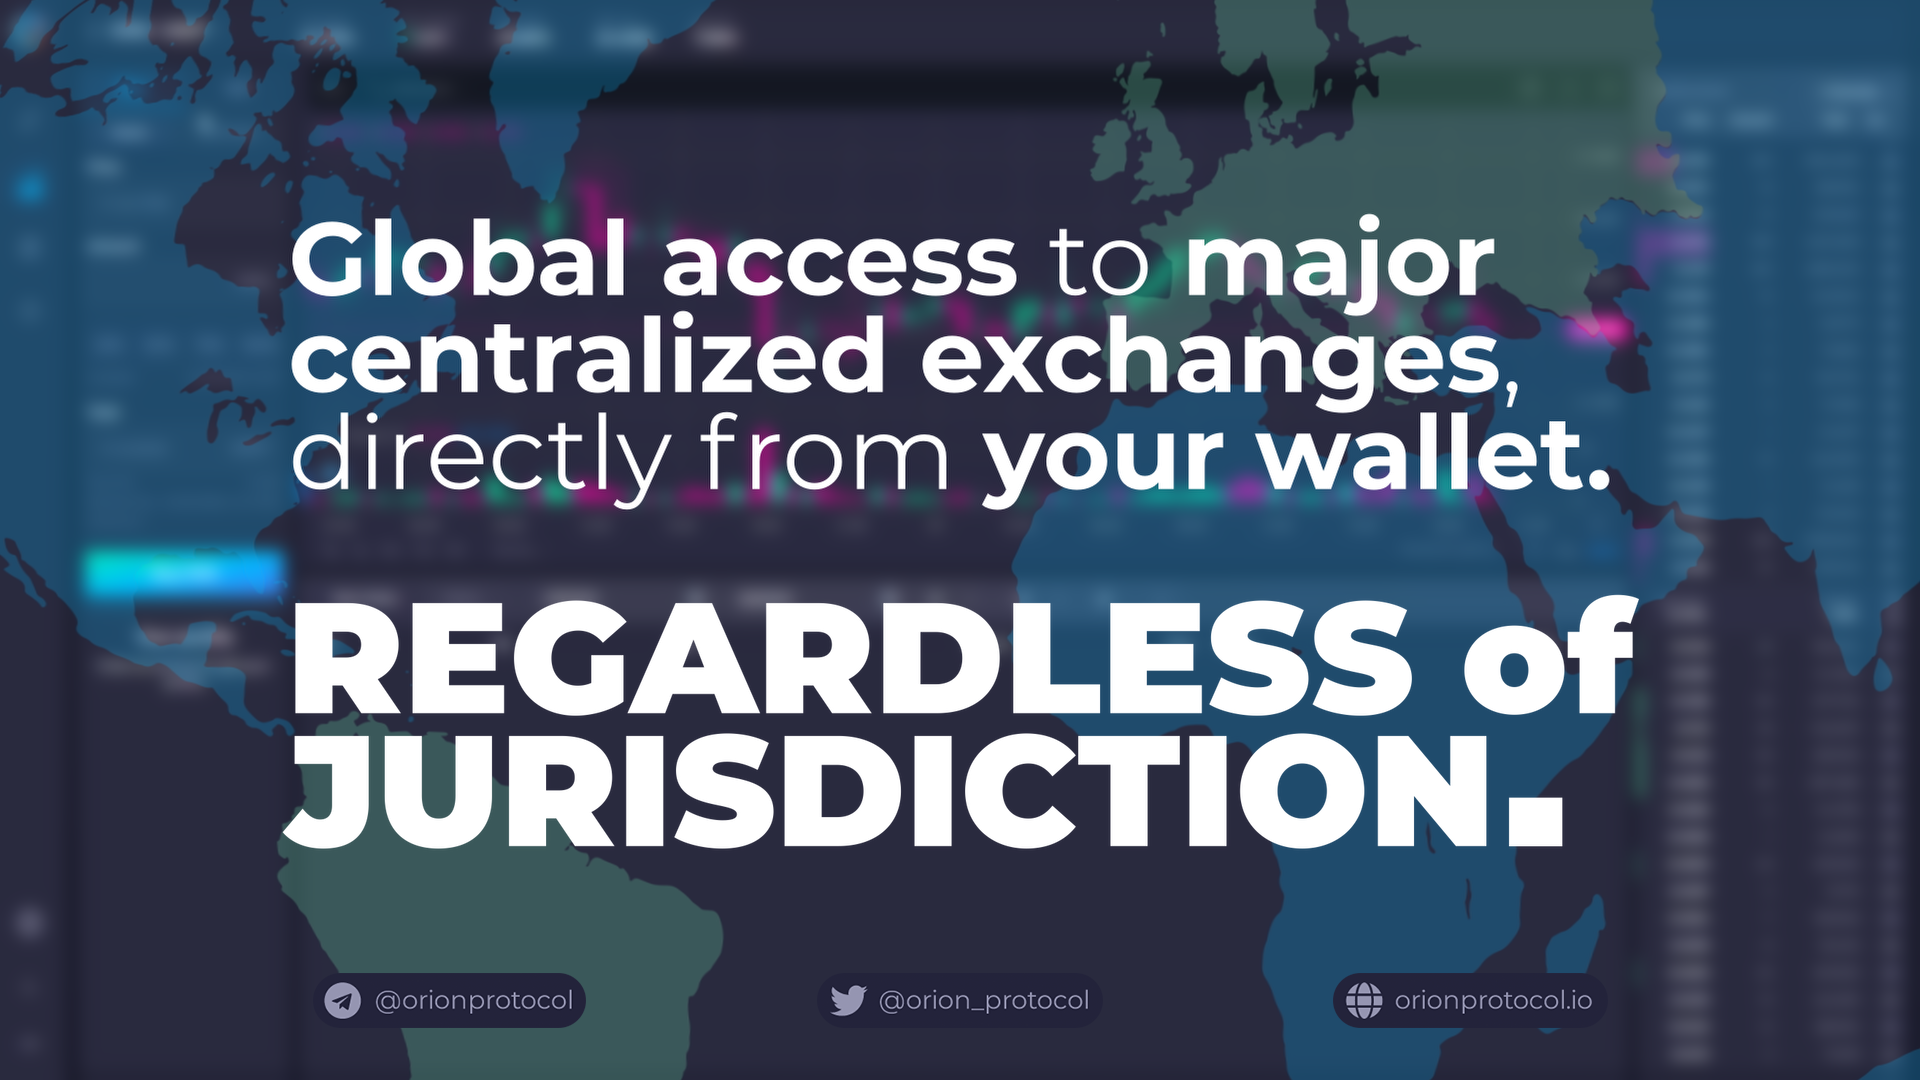 Global access to major centralized exchanges. No account, no KYC.